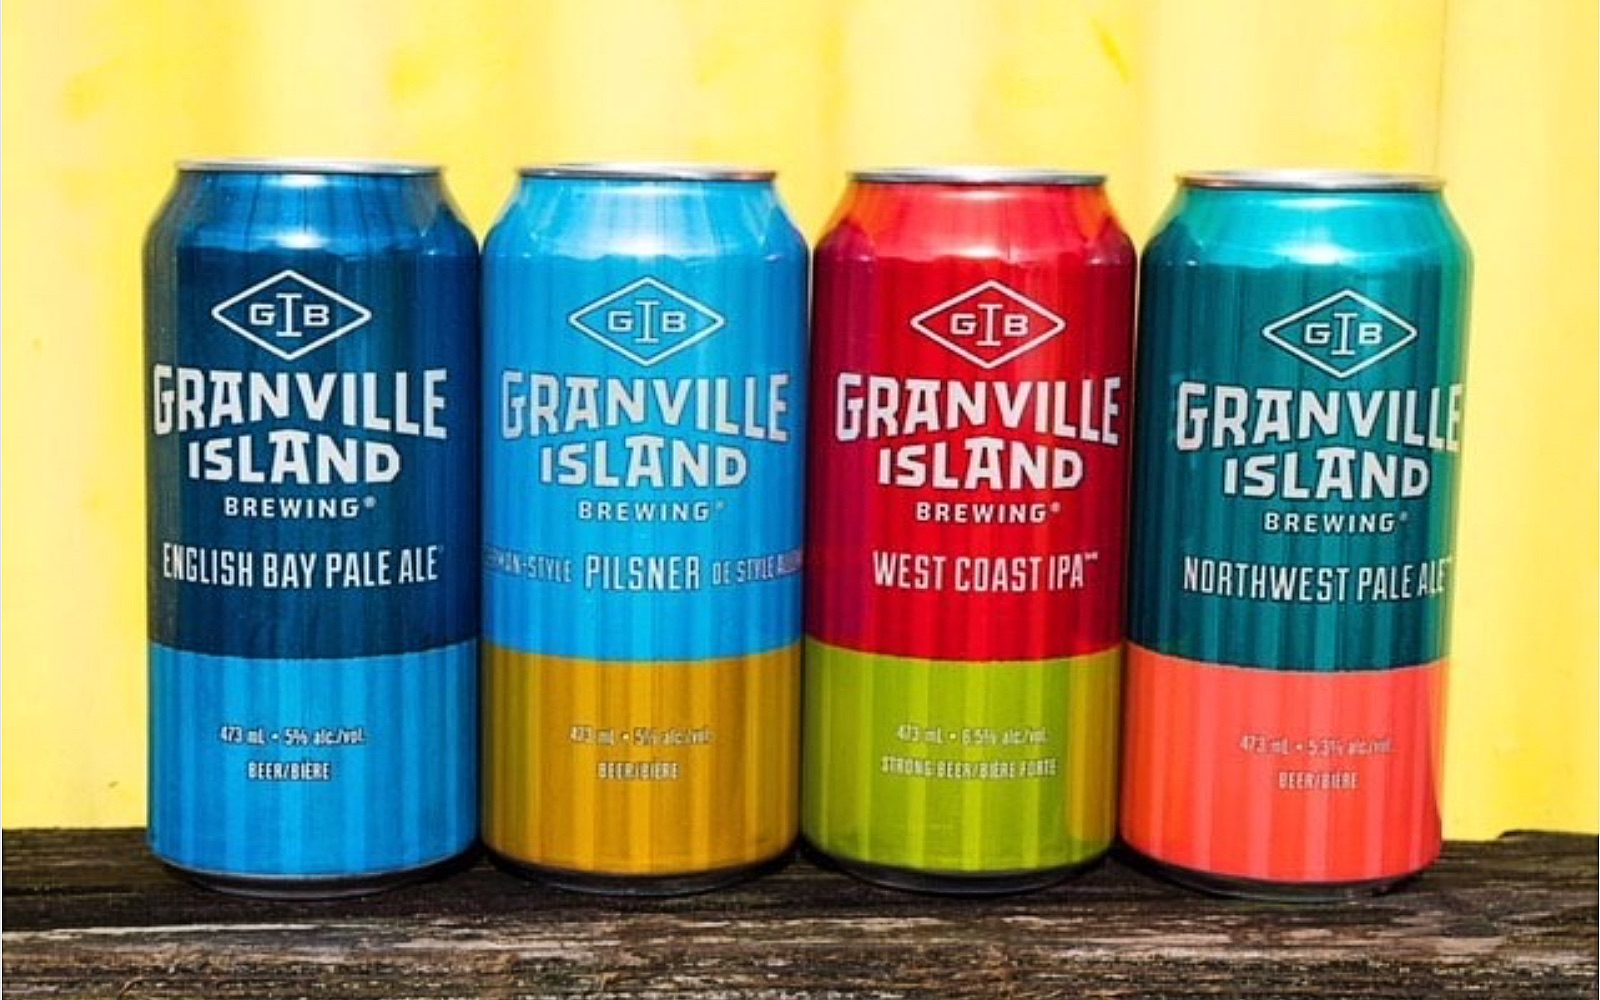 4 Tall cans from Granville Island Brewing